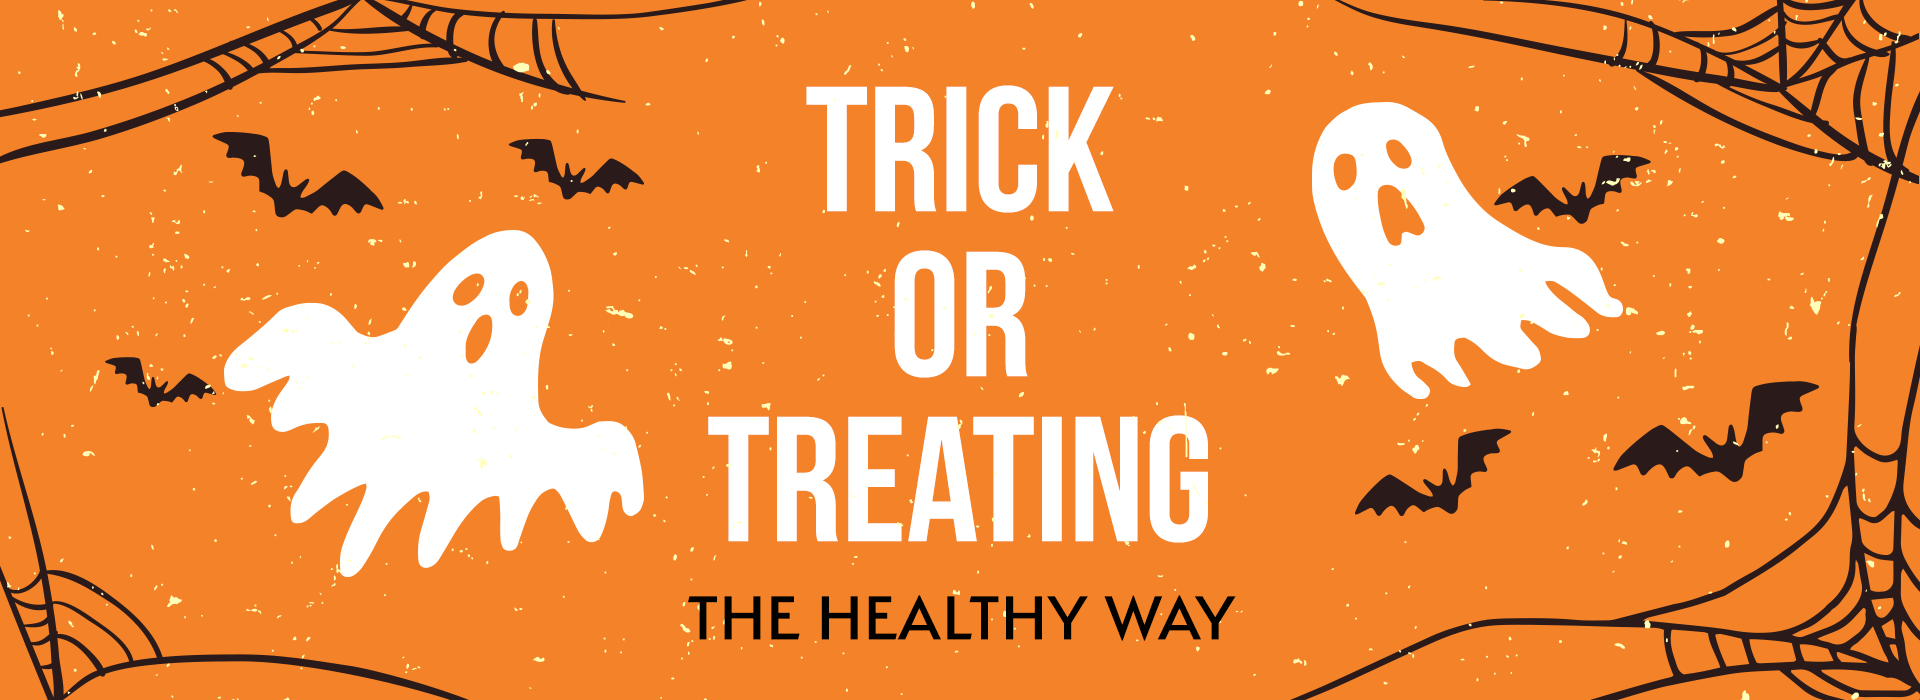 Trade in the Halloween Candy for Some Healthy Treats!